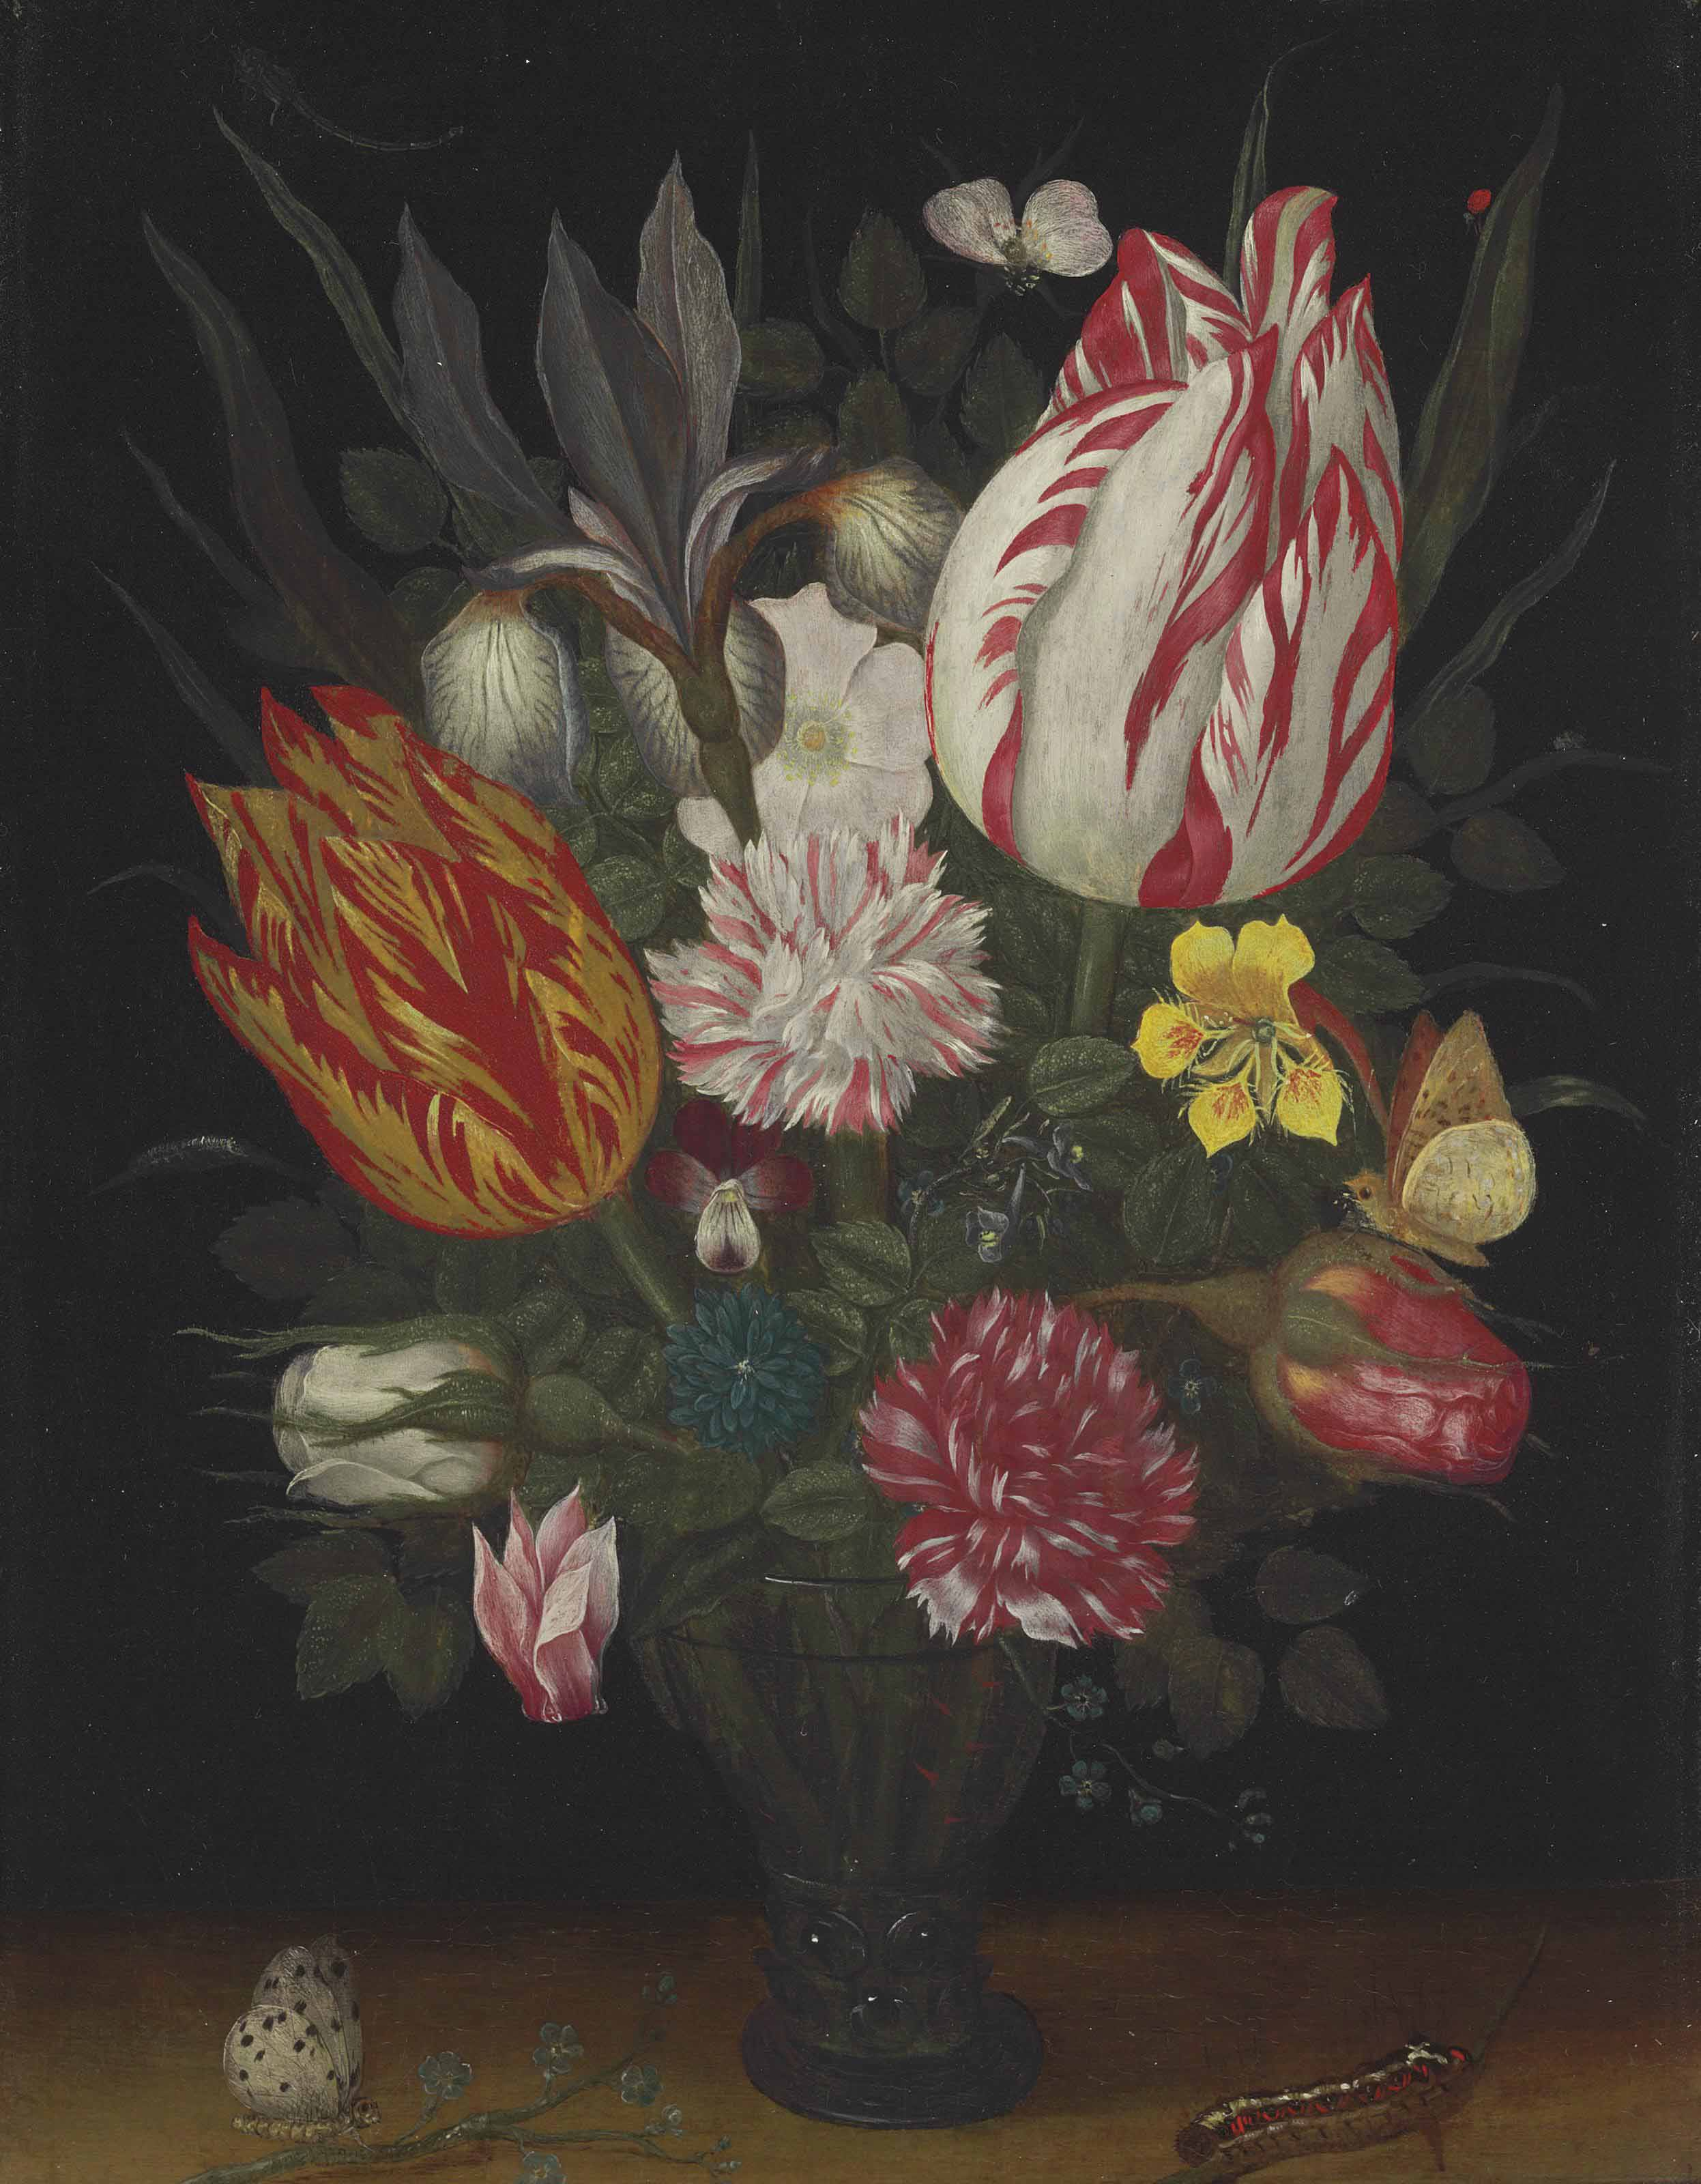 Tulips, carnations, an iris, a dog rose, a cyclamen, roses, a pansy and other flowers in a roemer with a caterpillar and a butterfly